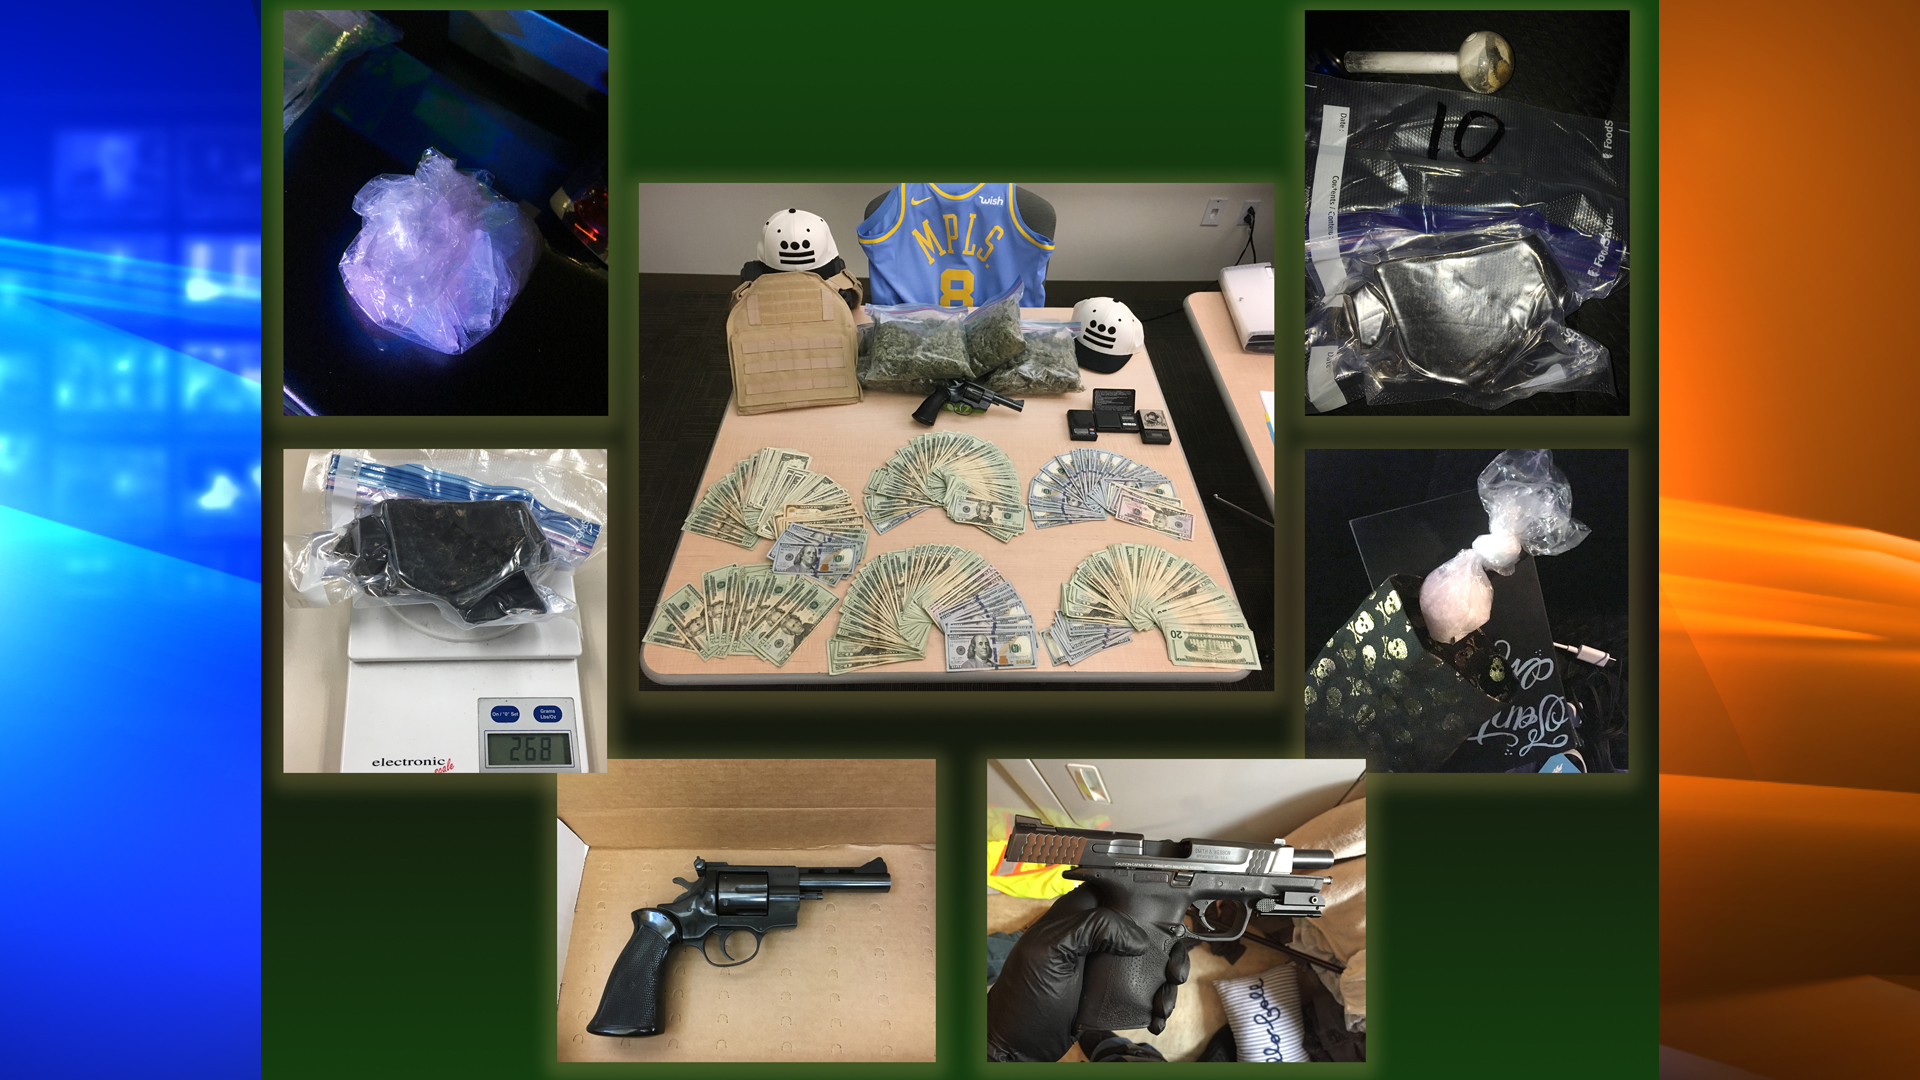 Moorpark police investigators arrested 14 people and seized a cache of drugs, guns and cash during a large-scale bust targeting prison-based drug ring. (Credit: Moorpark Police Department)